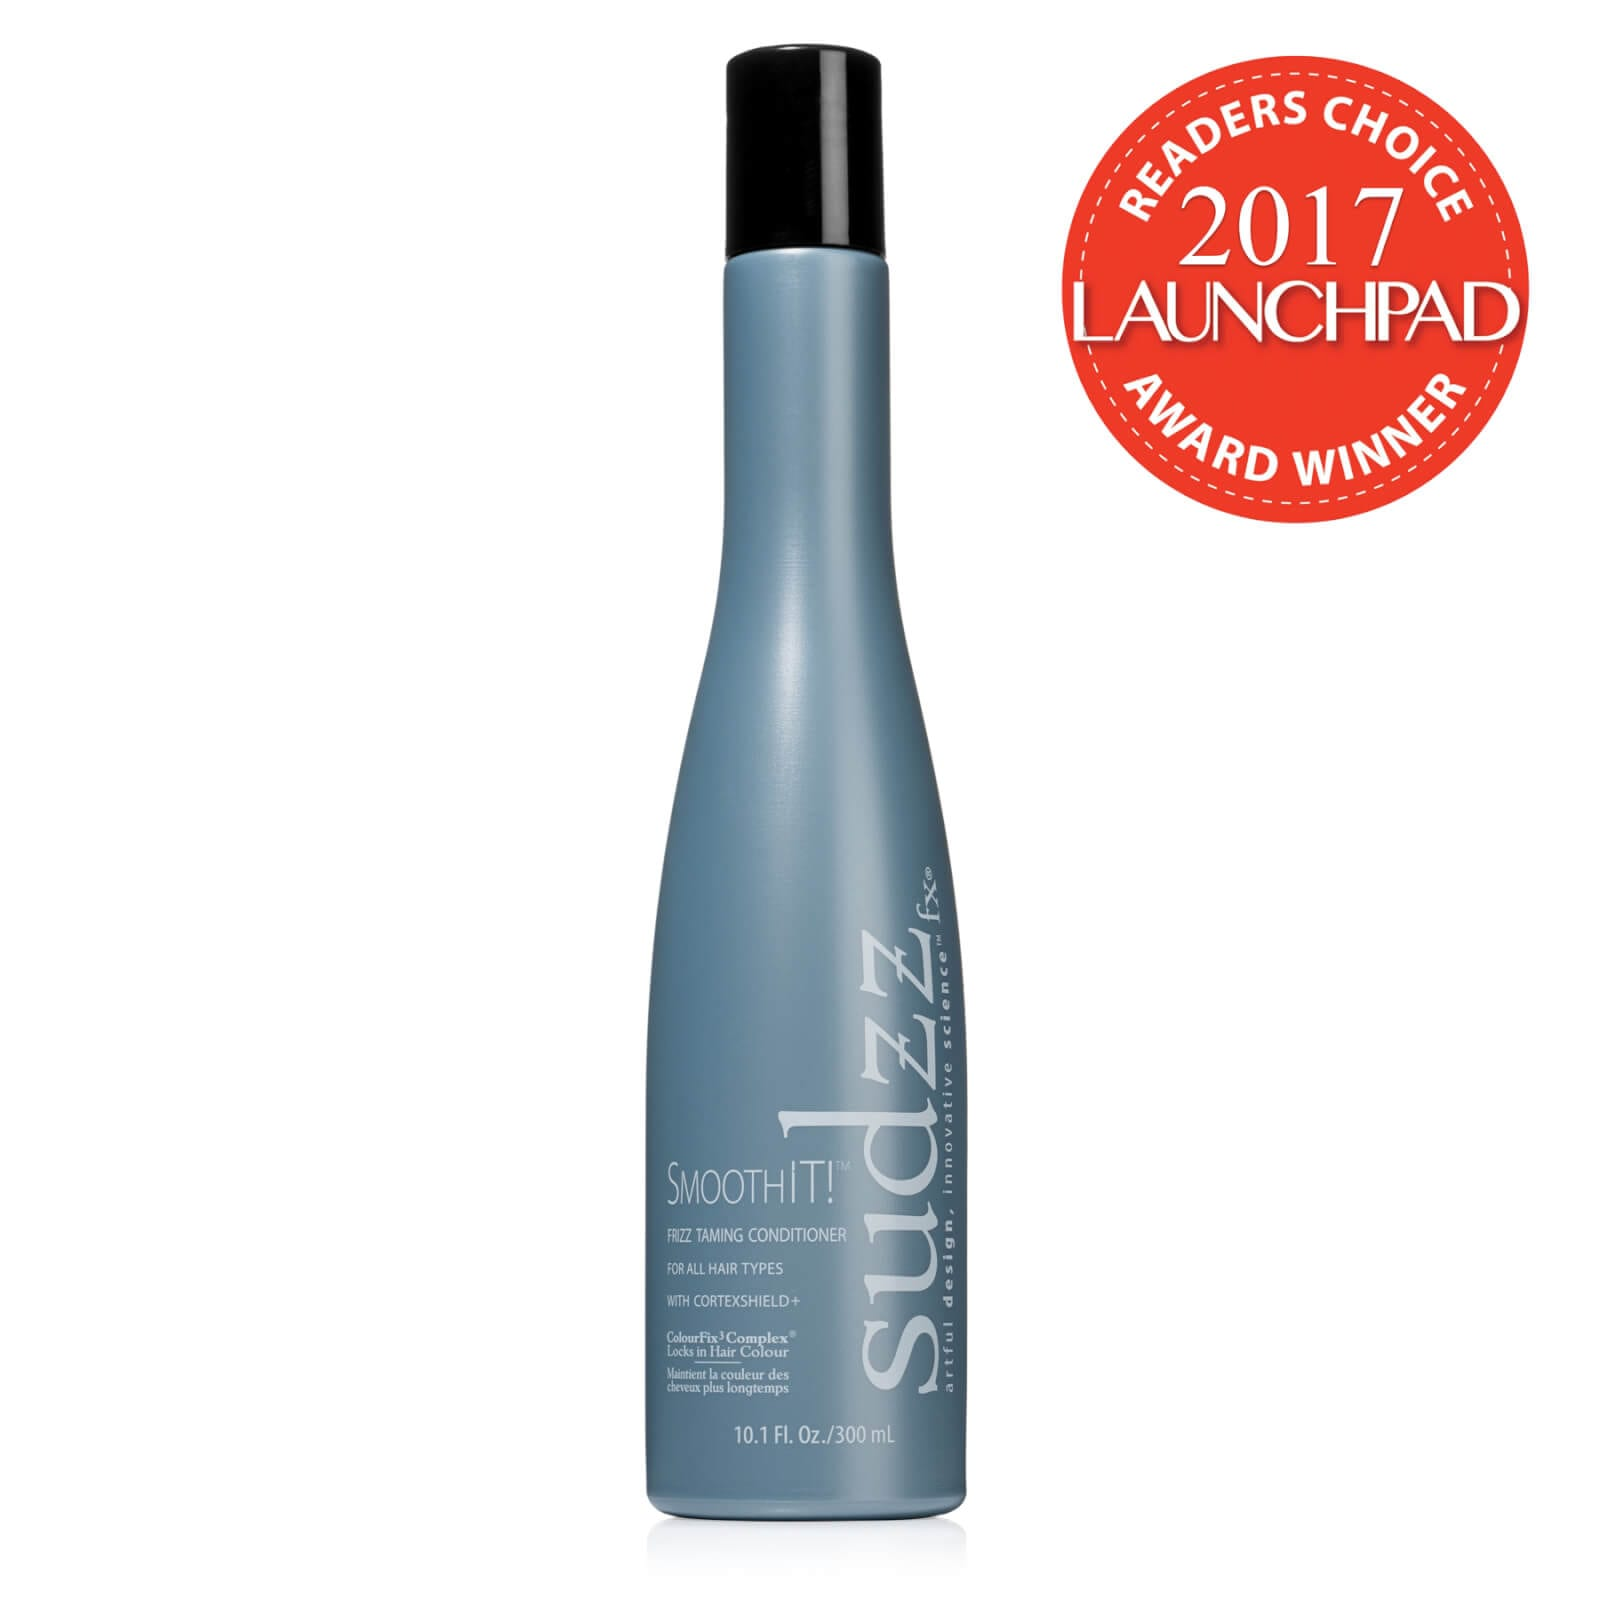 SUDZZfx SmoothIT! Frizz Taming Conditioner - Beauty Launchpad 2017 Reader's Choice Award Winner